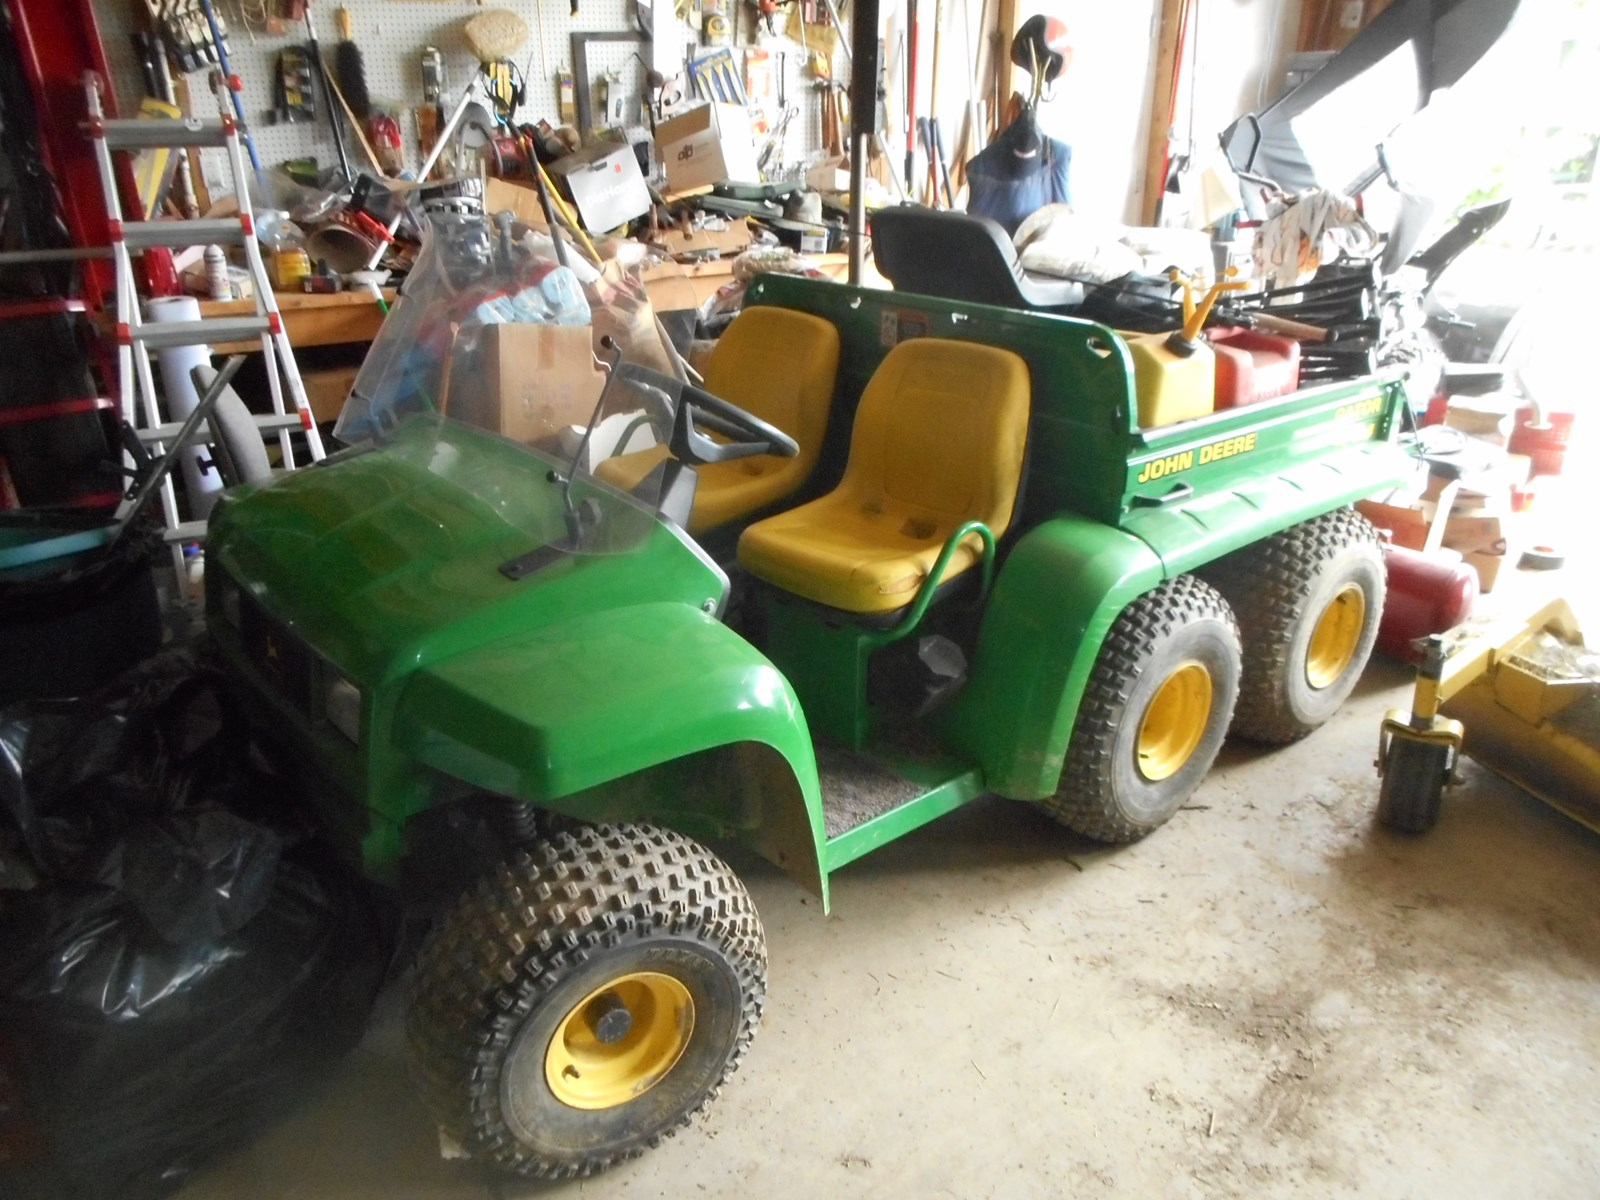 Public Auction - Backhoe, Gator, Tools, Lift, Motor Home and more!